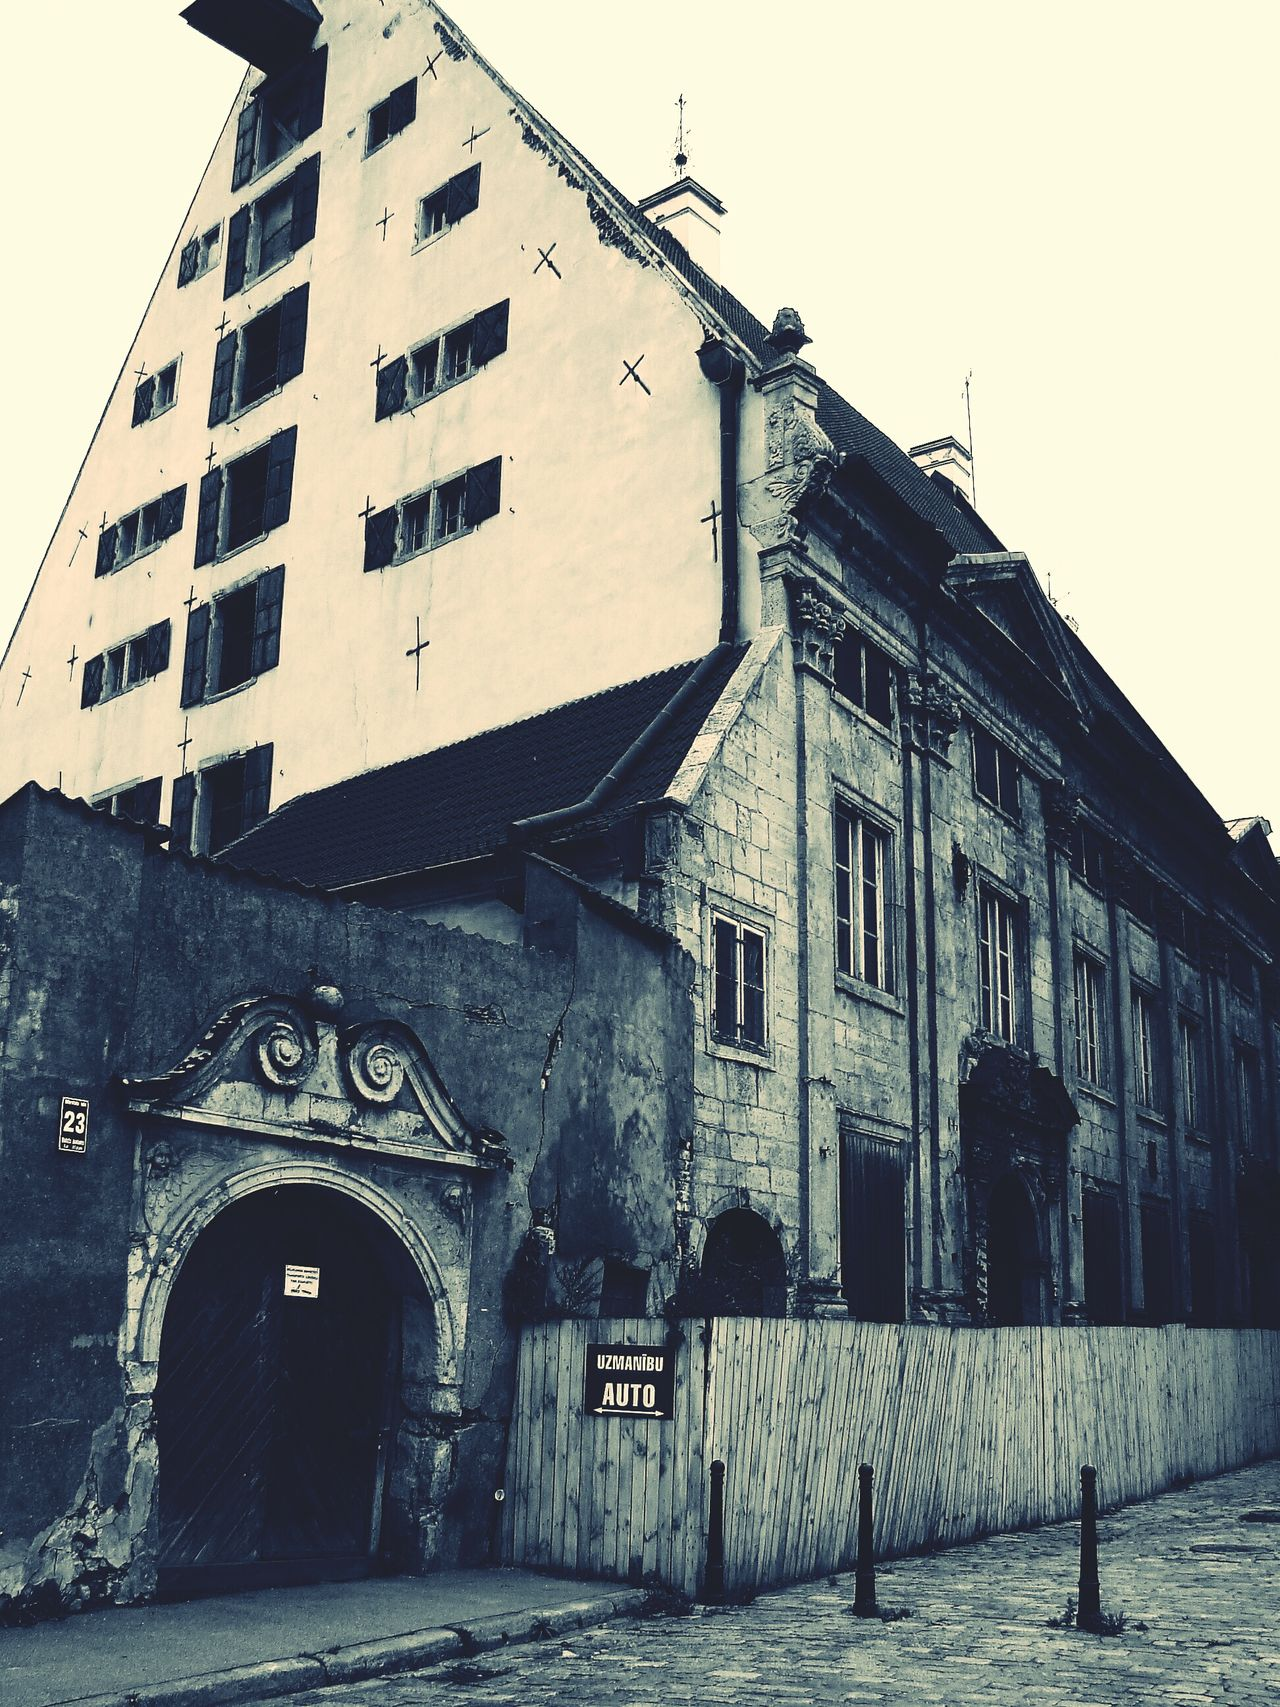 Architecture Built Structure Building Exterior City Arch History Outdoors Sky Day No People Latvija Old Town Riga Vintage Photo The Architect - 2017 EyeEm Awards Neighborhood Map Riga Latvia